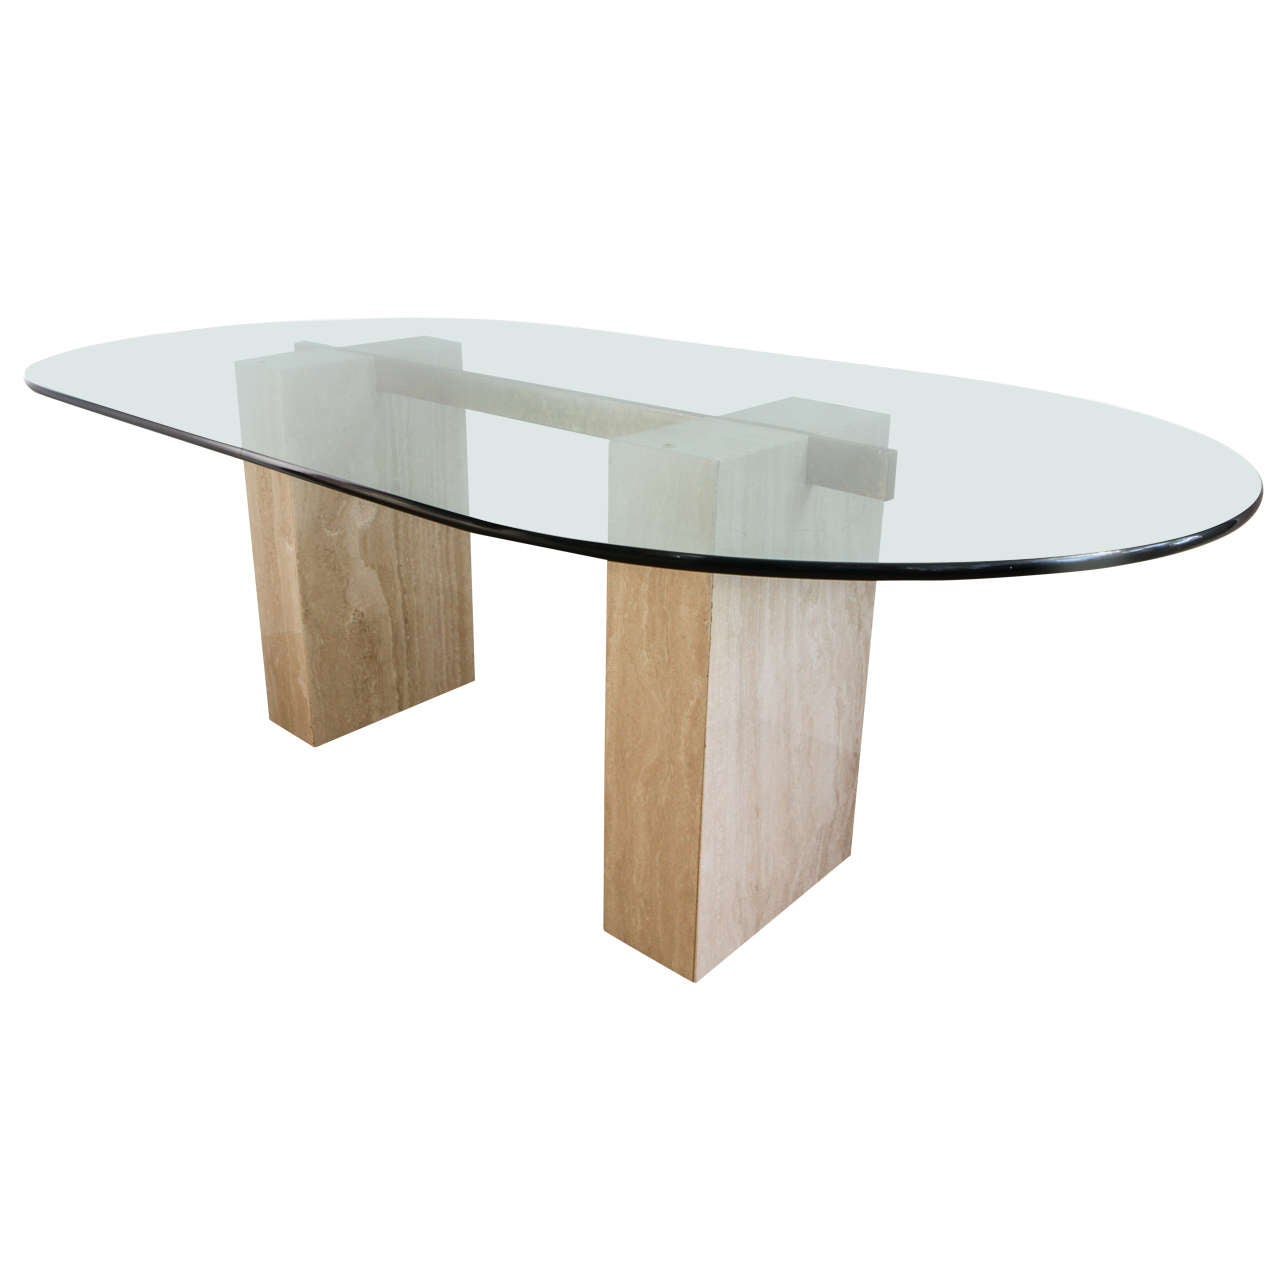 Travertine Dining Room Table Travertine Dining Room Tables 55 For Sale At 1stdibs